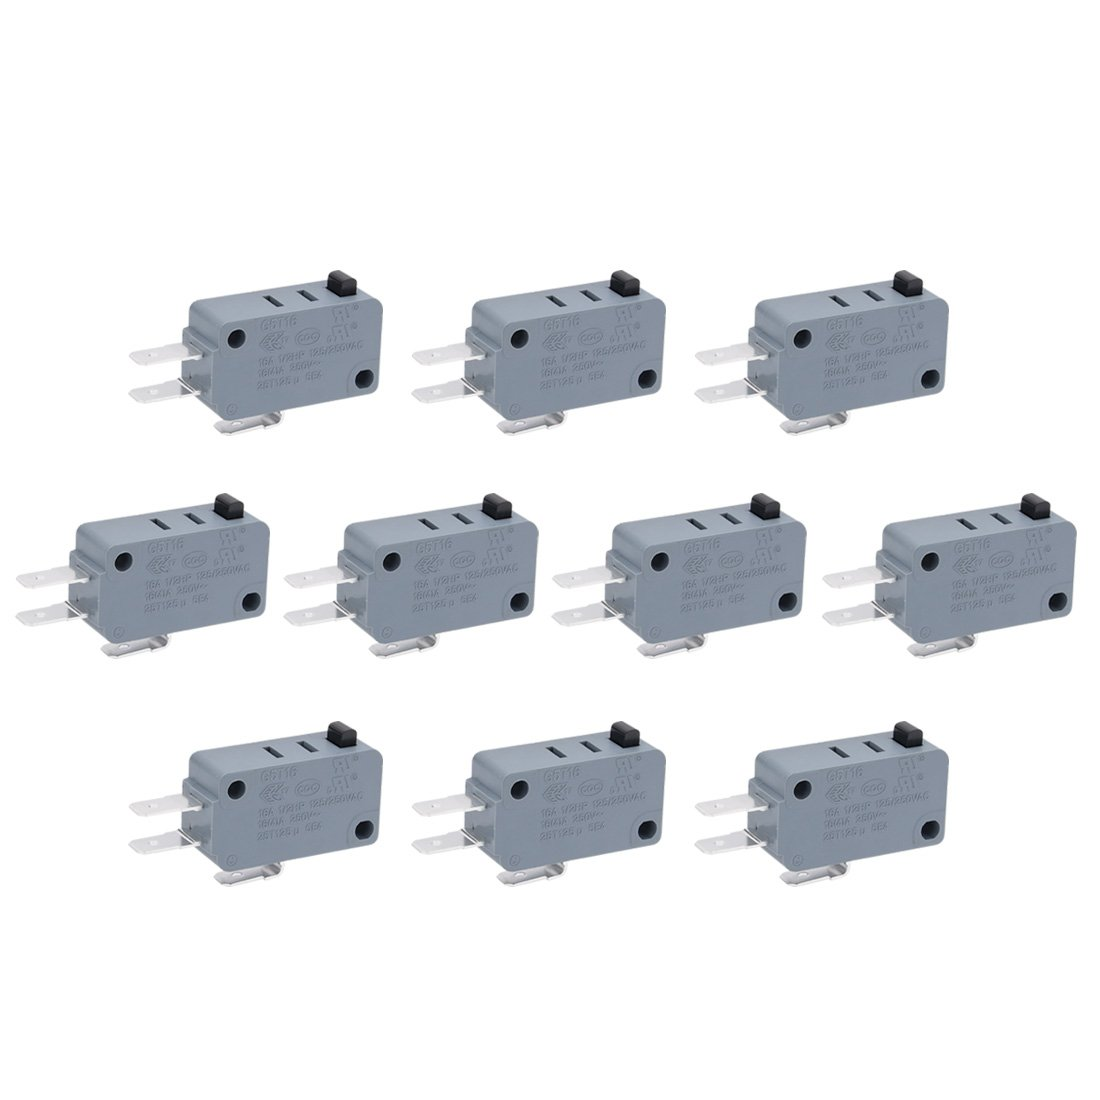 Uxcell a11042900ux0112 G5T16-E1Z200 Electric 1NO 1NC Contacts Push Button Micro Switch Black (Pack of 10)